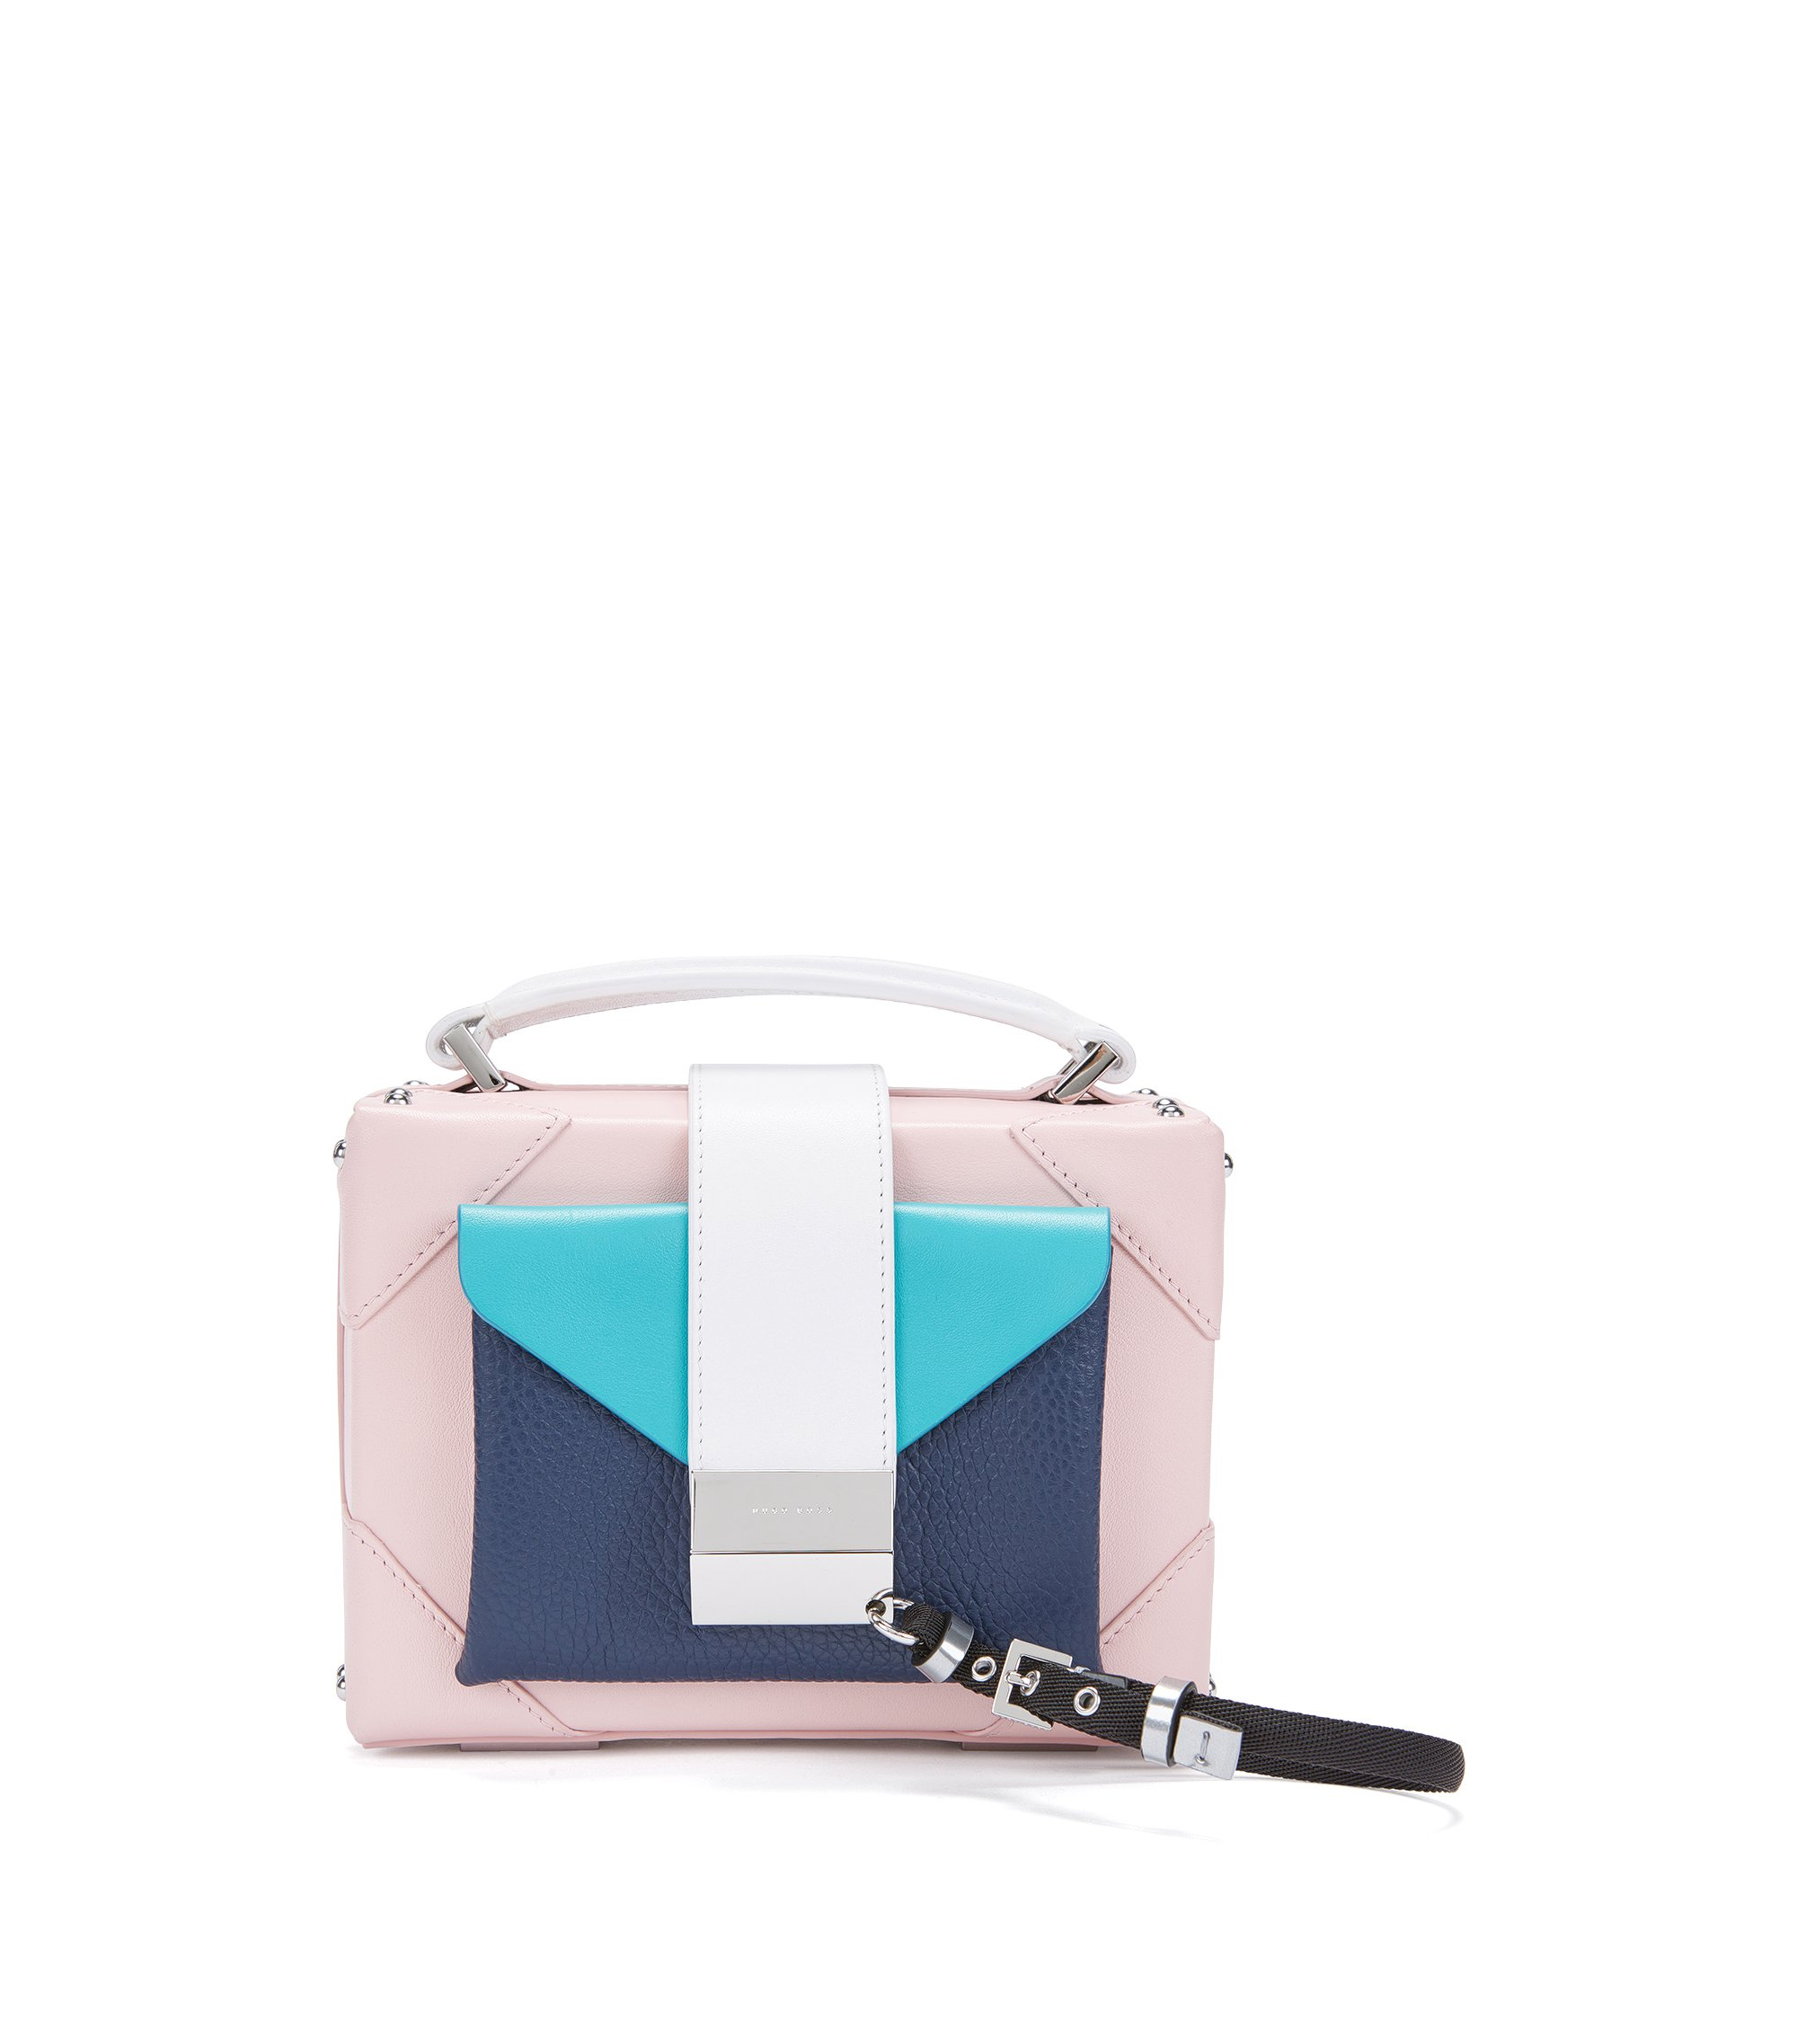 Gallery Collection shoulder bag in Italian leather, light pink